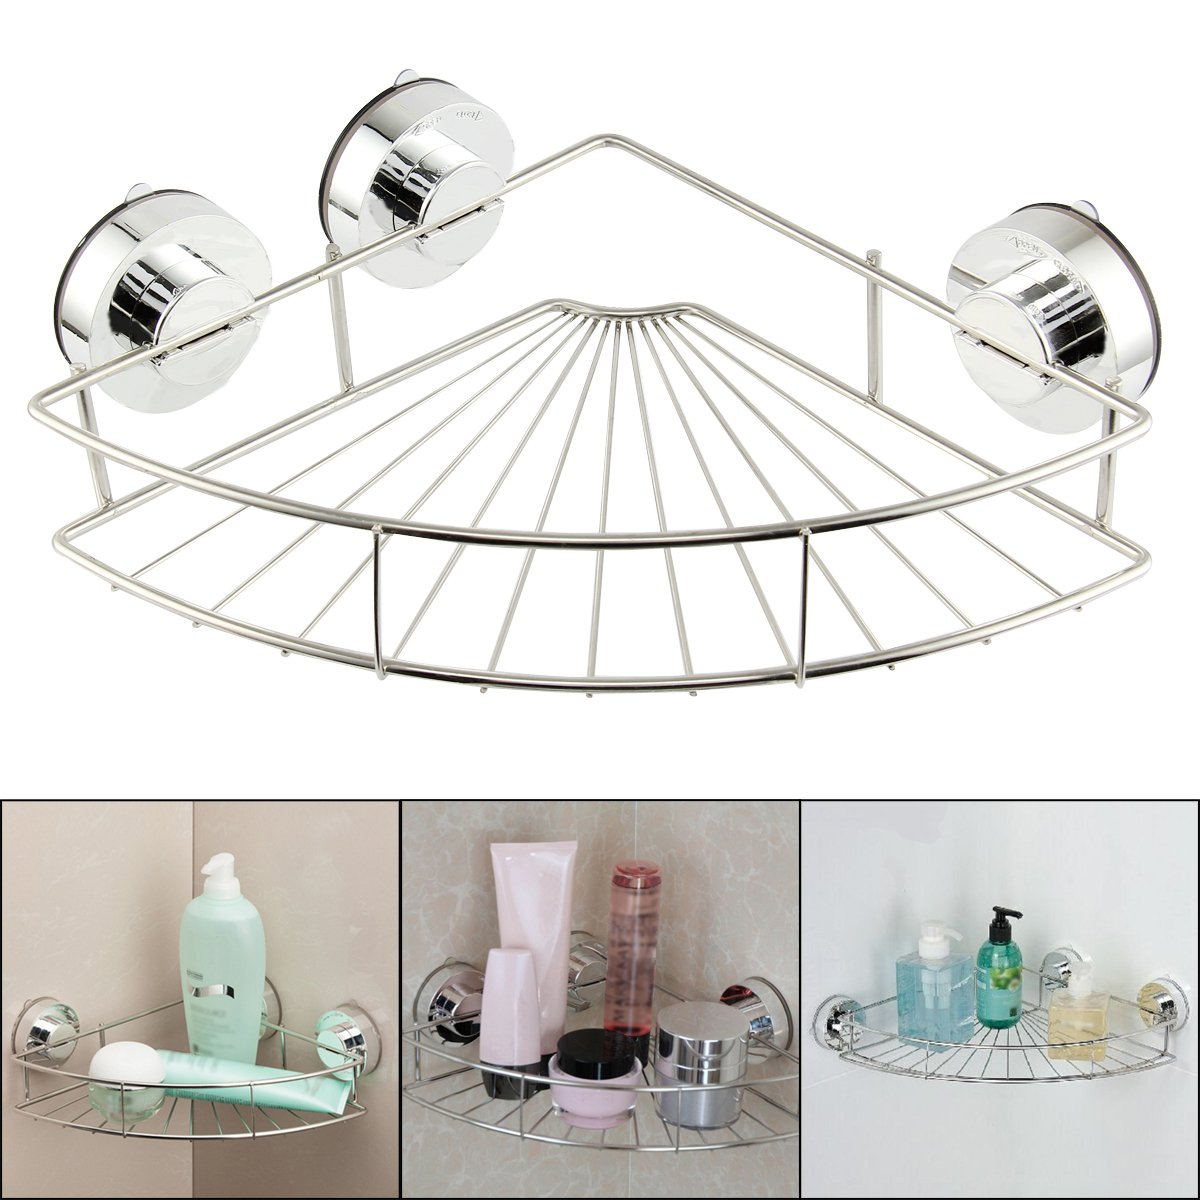 wire co kitchen bathroom white caddy home hanging dish shower storage bath dp rack uk amazon laminated soap